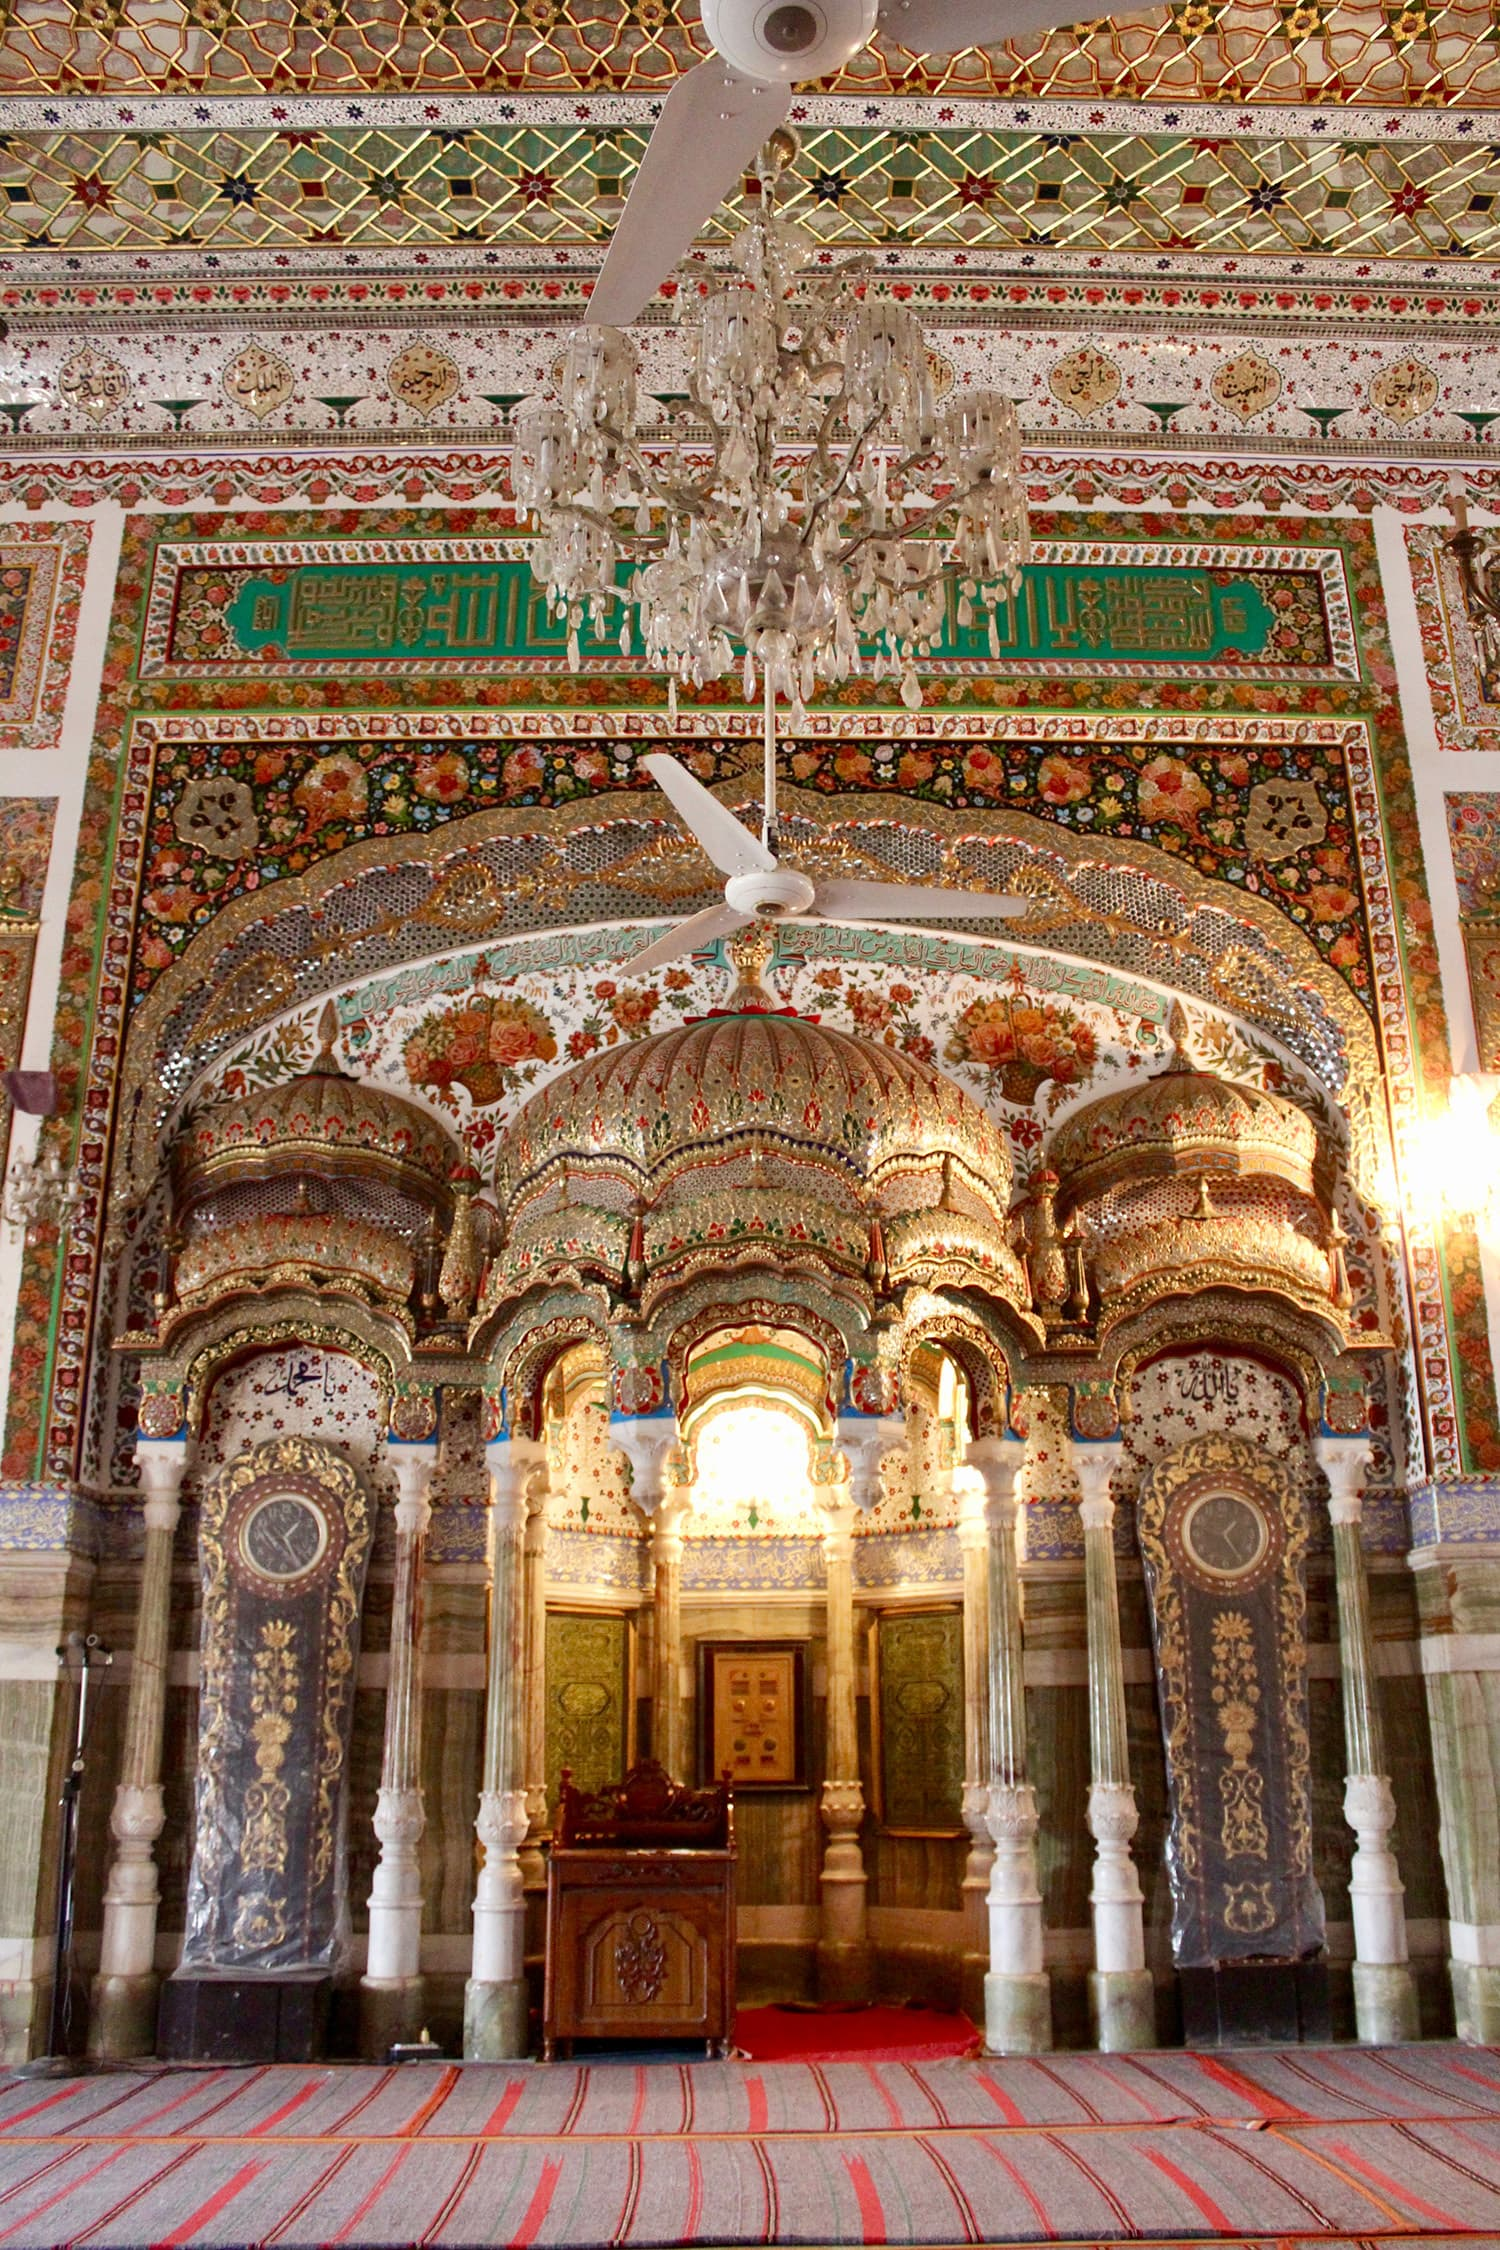 The mihrab at Bhong Mosque.